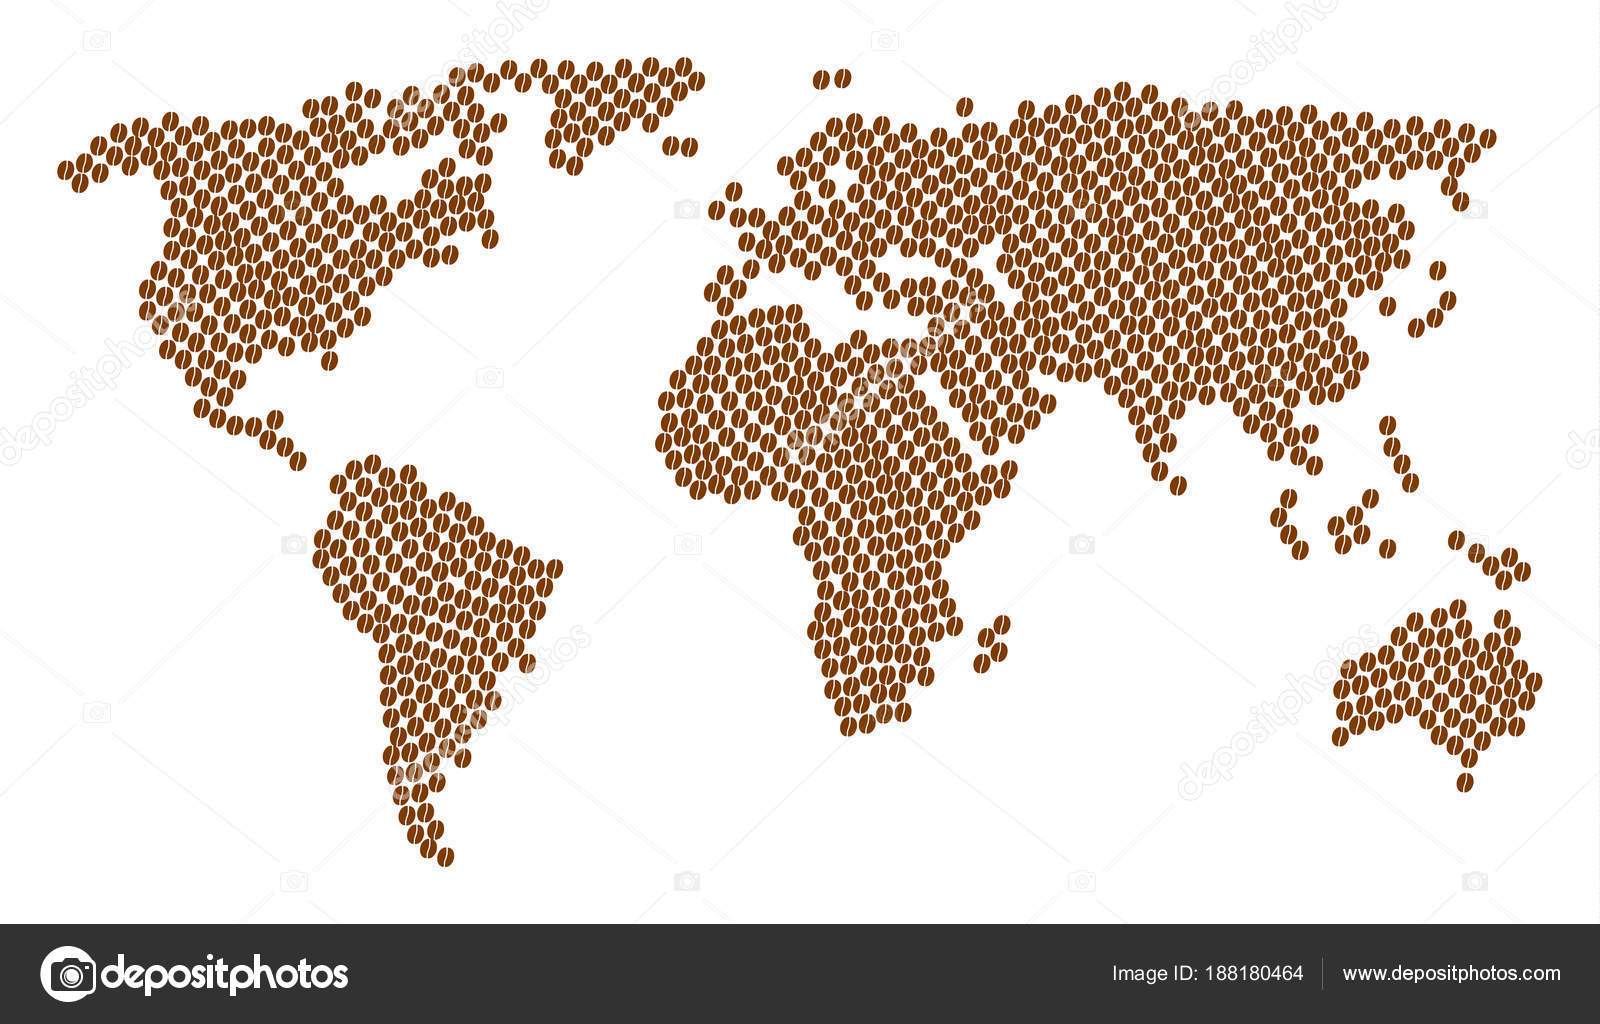 World map mosaic of coffee bean icons stock vector ahasoft world map mosaic of coffee bean icons stock vector gumiabroncs Images